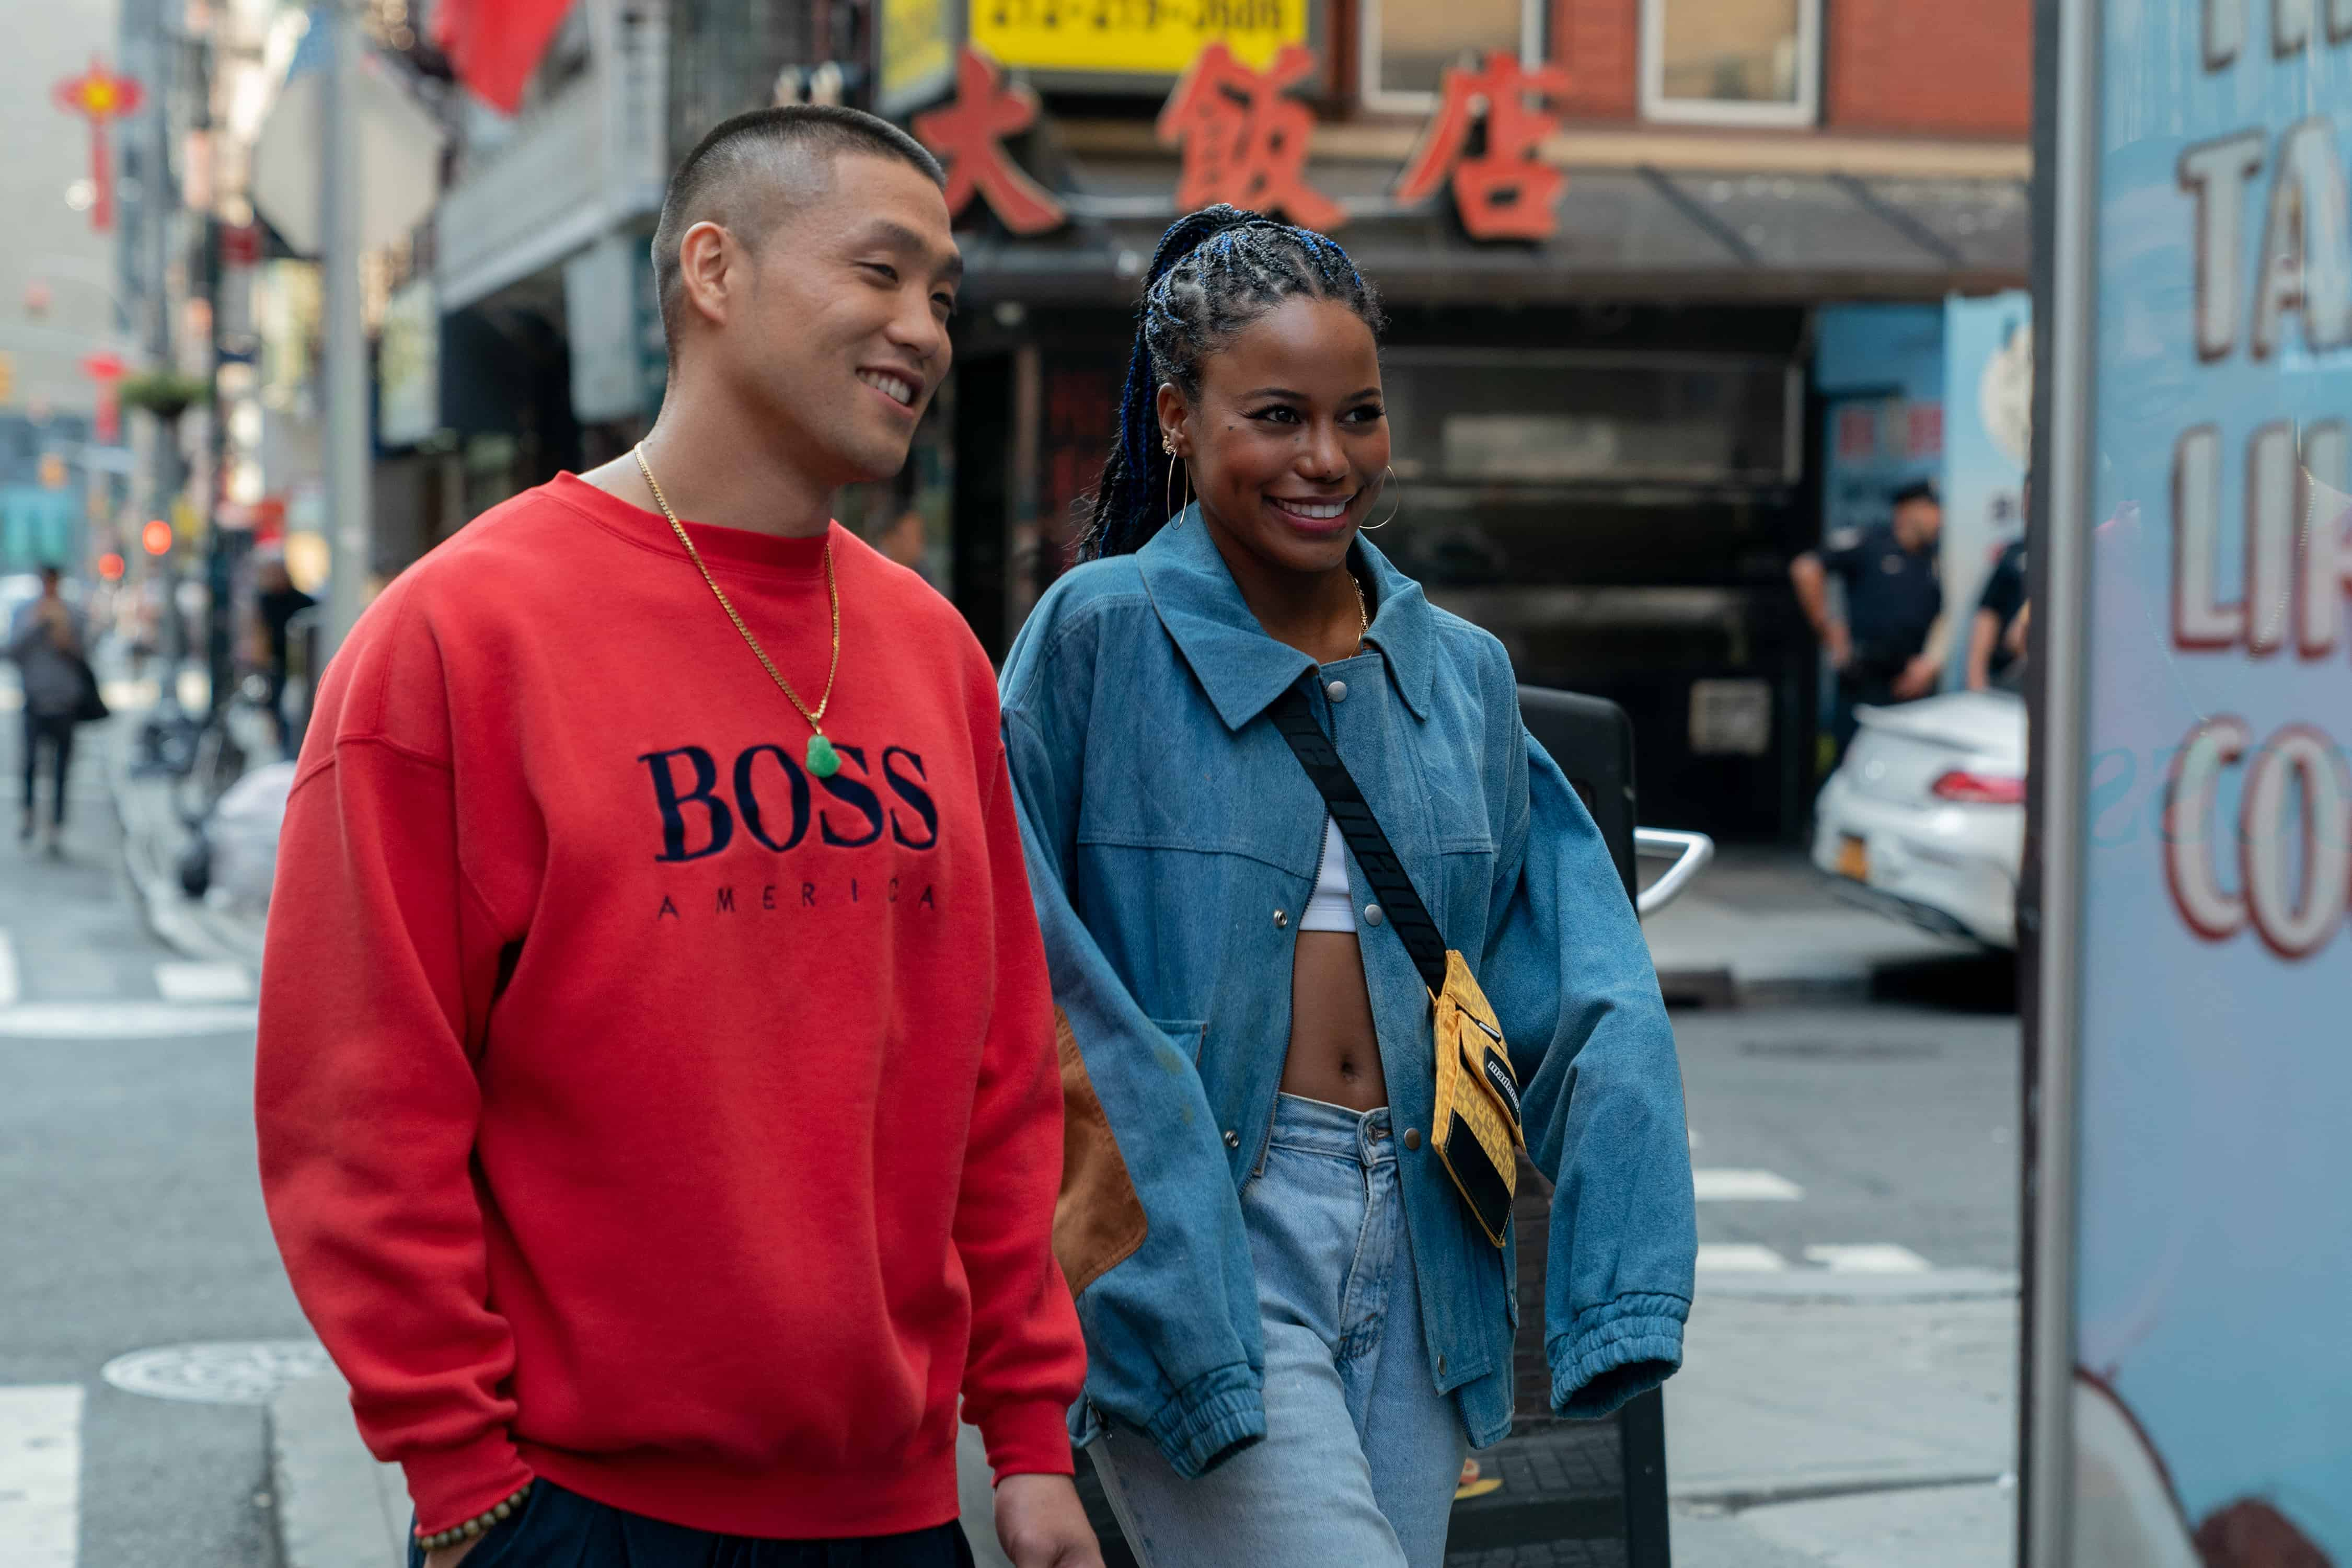 Alfred 'Boogie' (Taylor Takahashi) and Eleanor (Taylour Paige) on a date